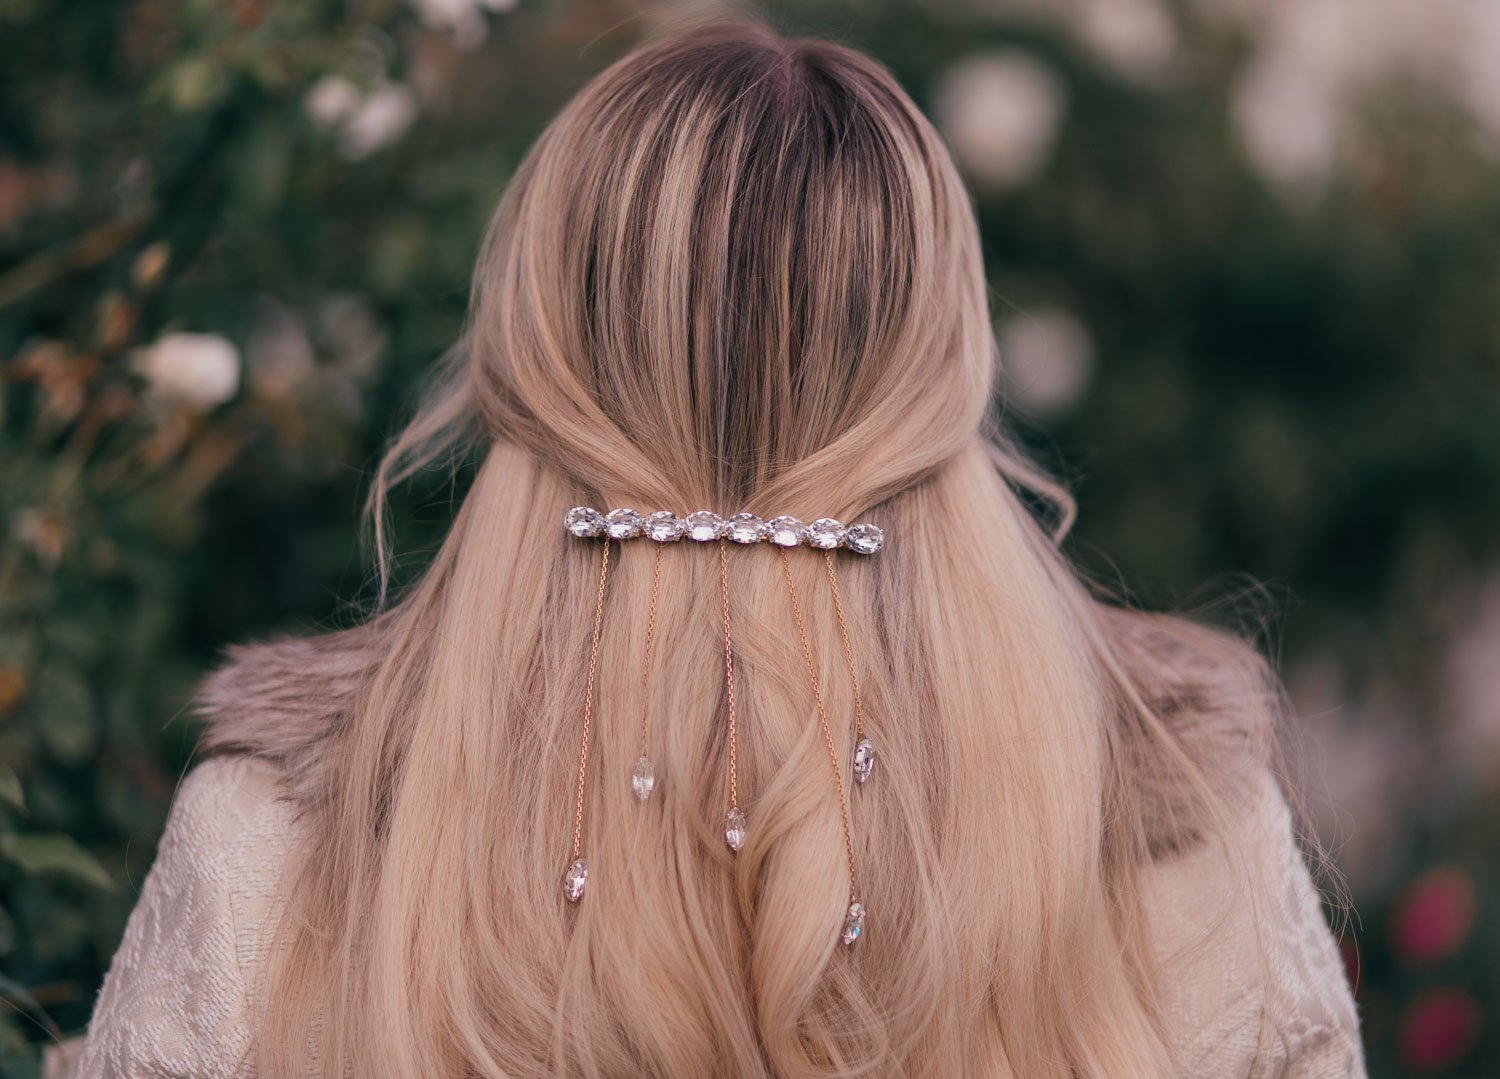 Elizabeth Hugen of Lizzie in Lace swears a glamorous holiday hair clip.